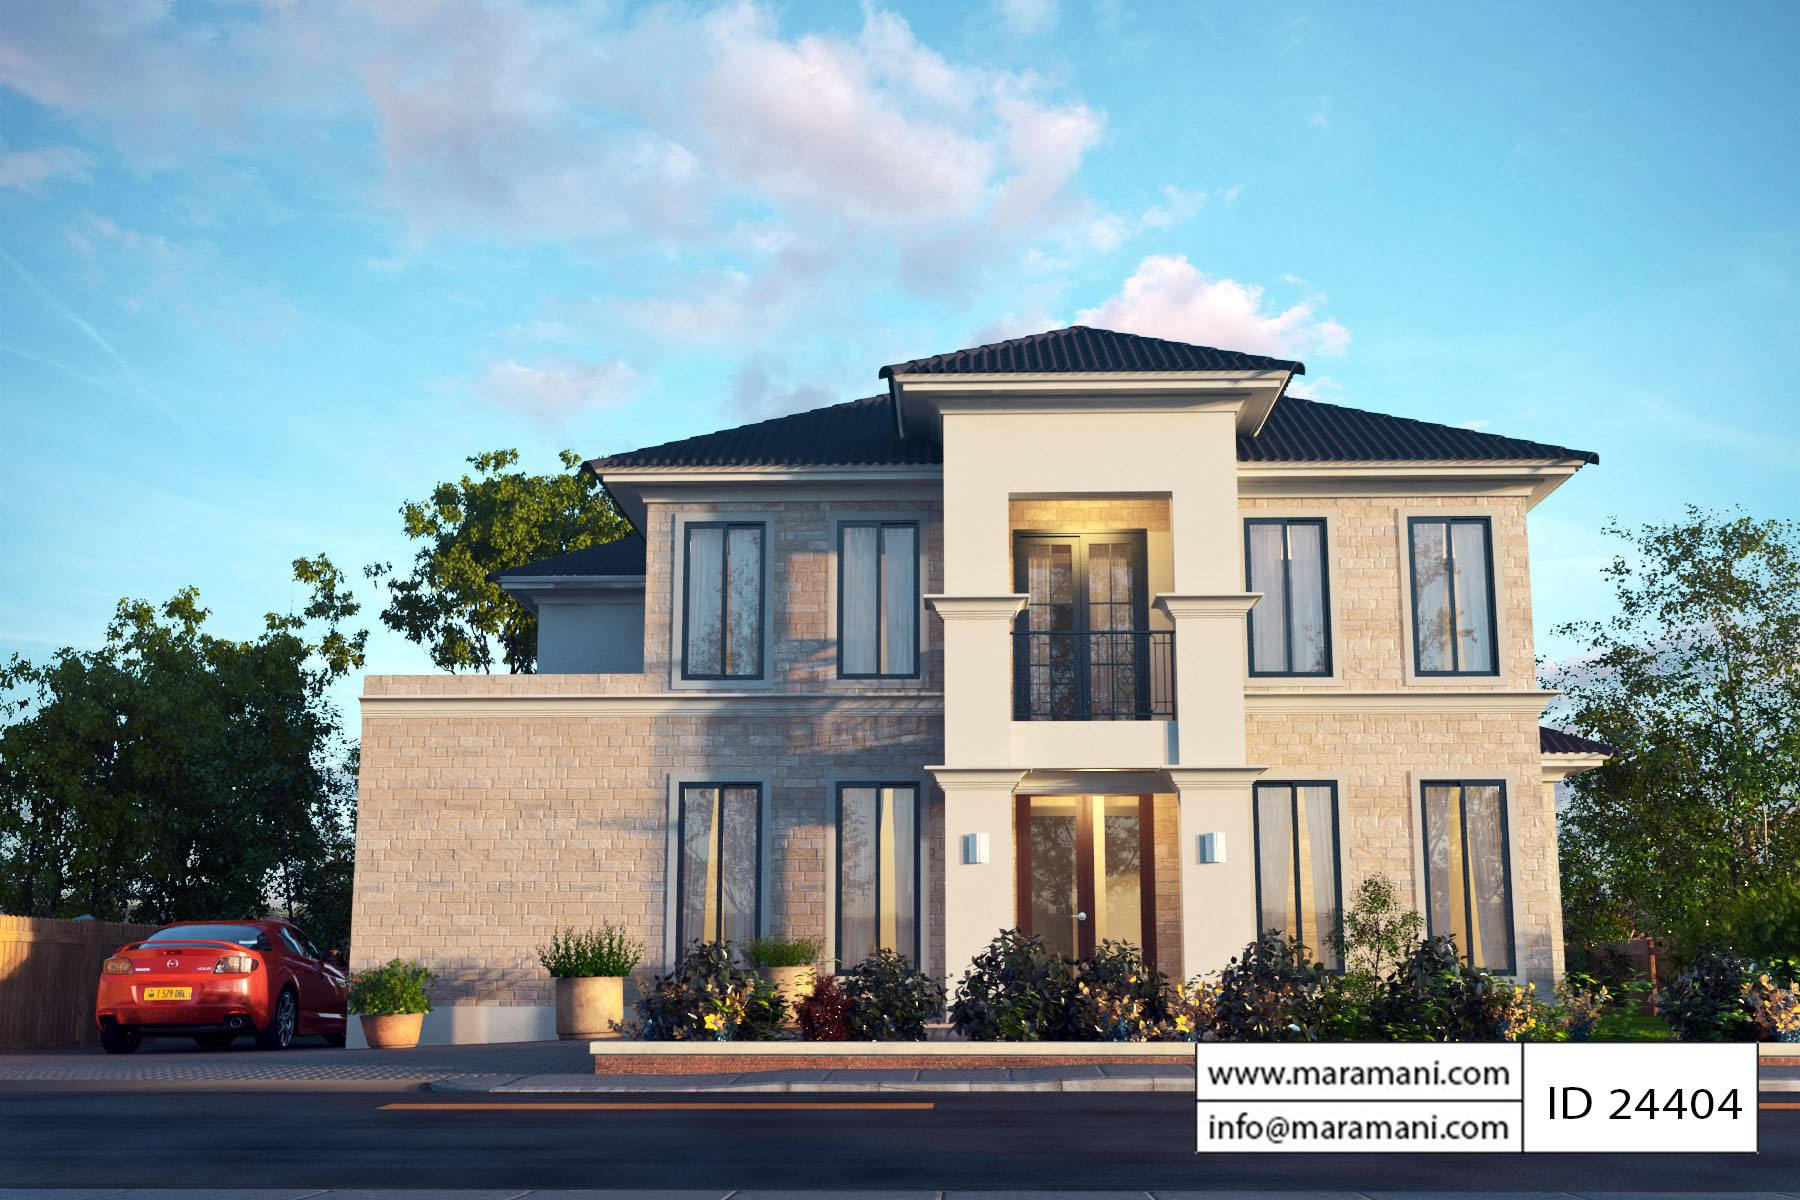 Lovely Modern House Plans With 4 Bedrooms Part - 10: Maramani.com